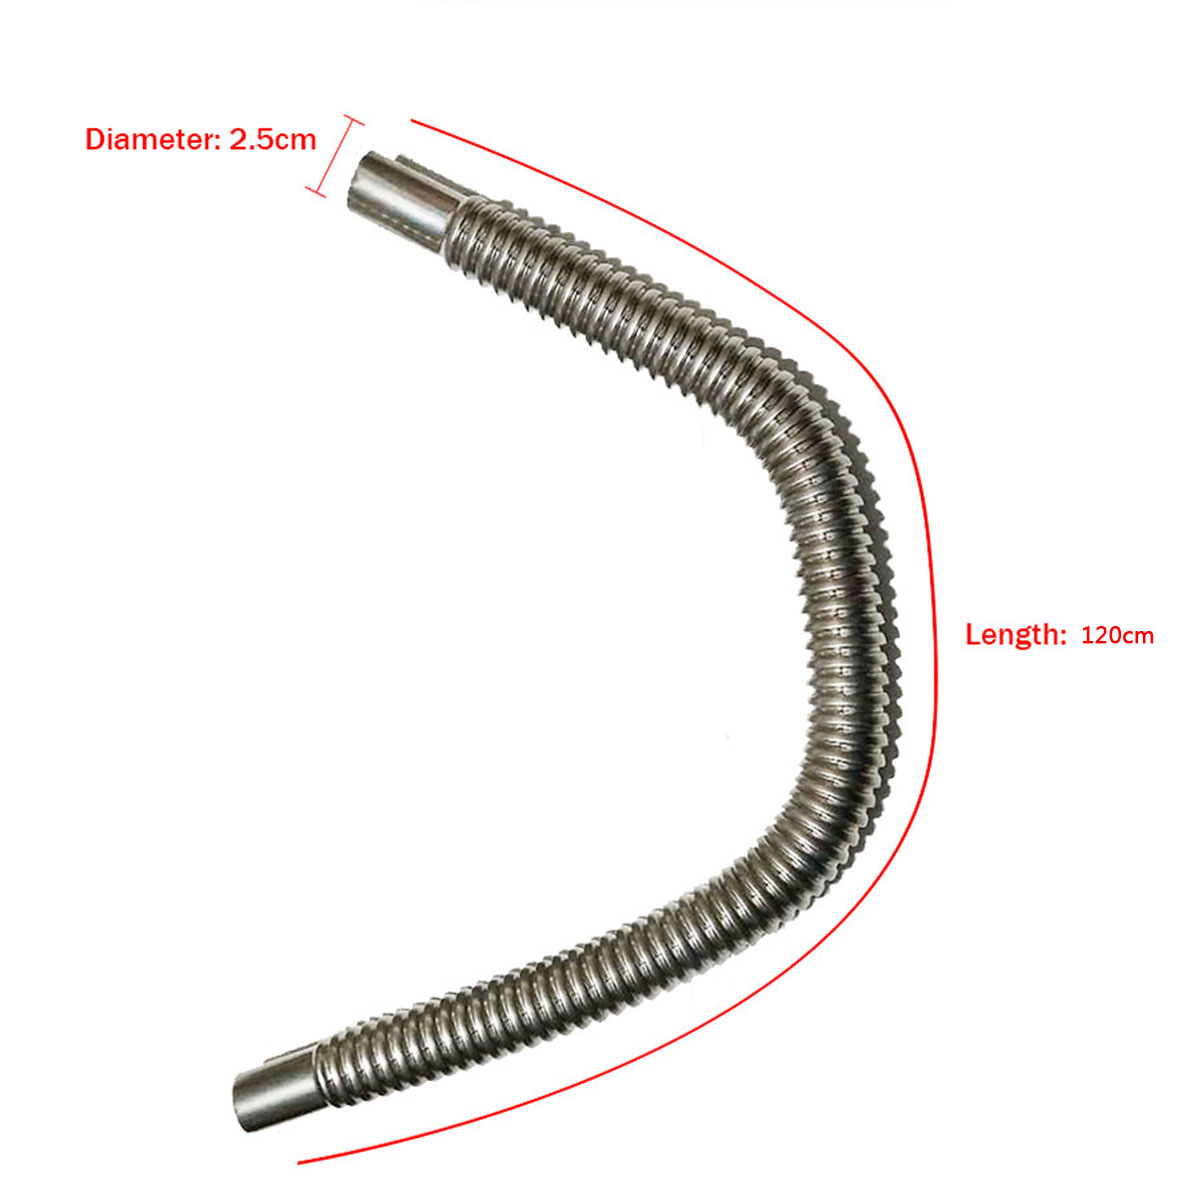 120cm-exhaust-pipe-diameter-25cm-gas-vent-for-air-diesel-parking-heater-for-car-truck-bus-boat-auto-accessory